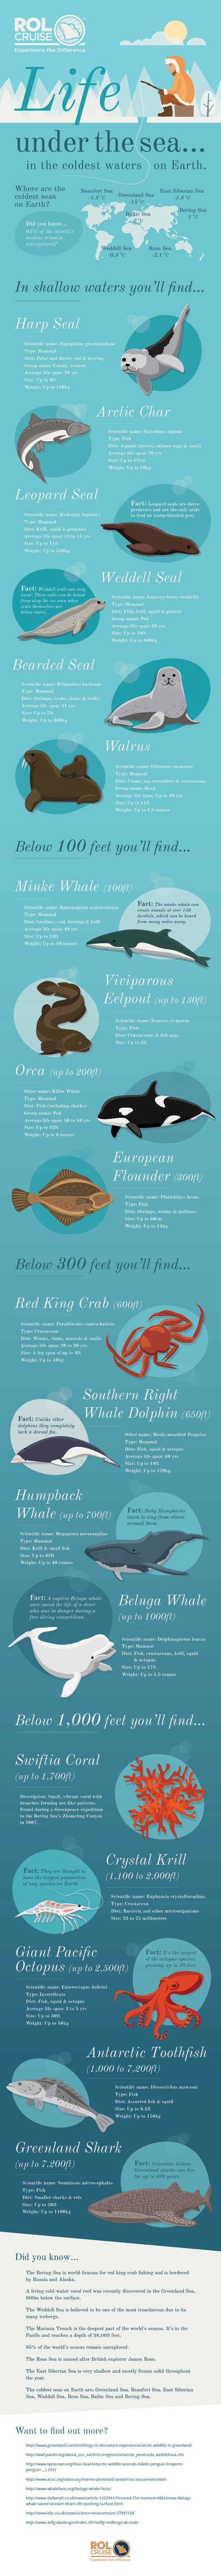 Life Under The Sea #infographic